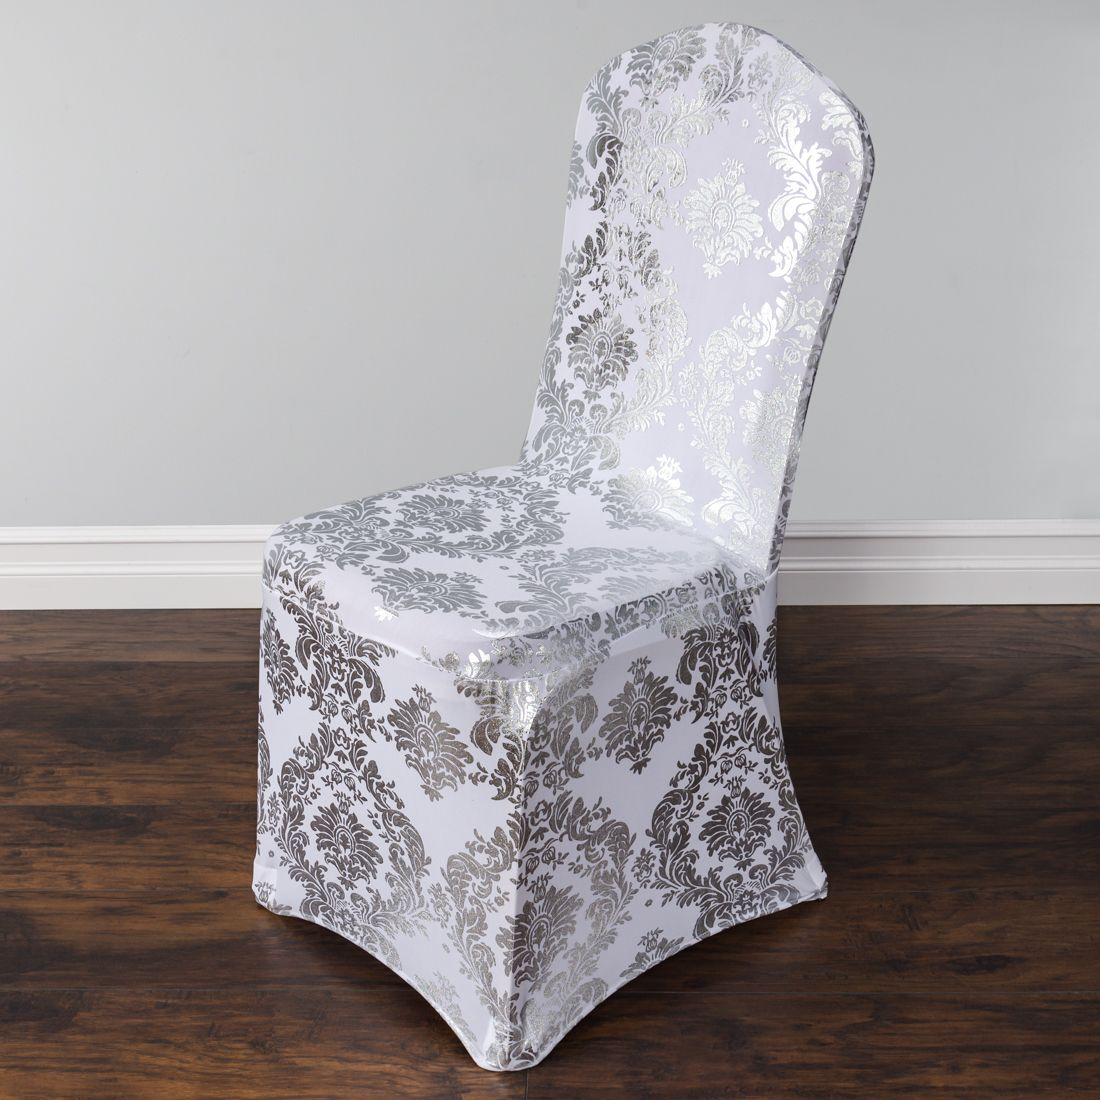 Wedding Chair Covers Alibaba Cheap White Silver Metallic Damask Stretch Banquet Cover